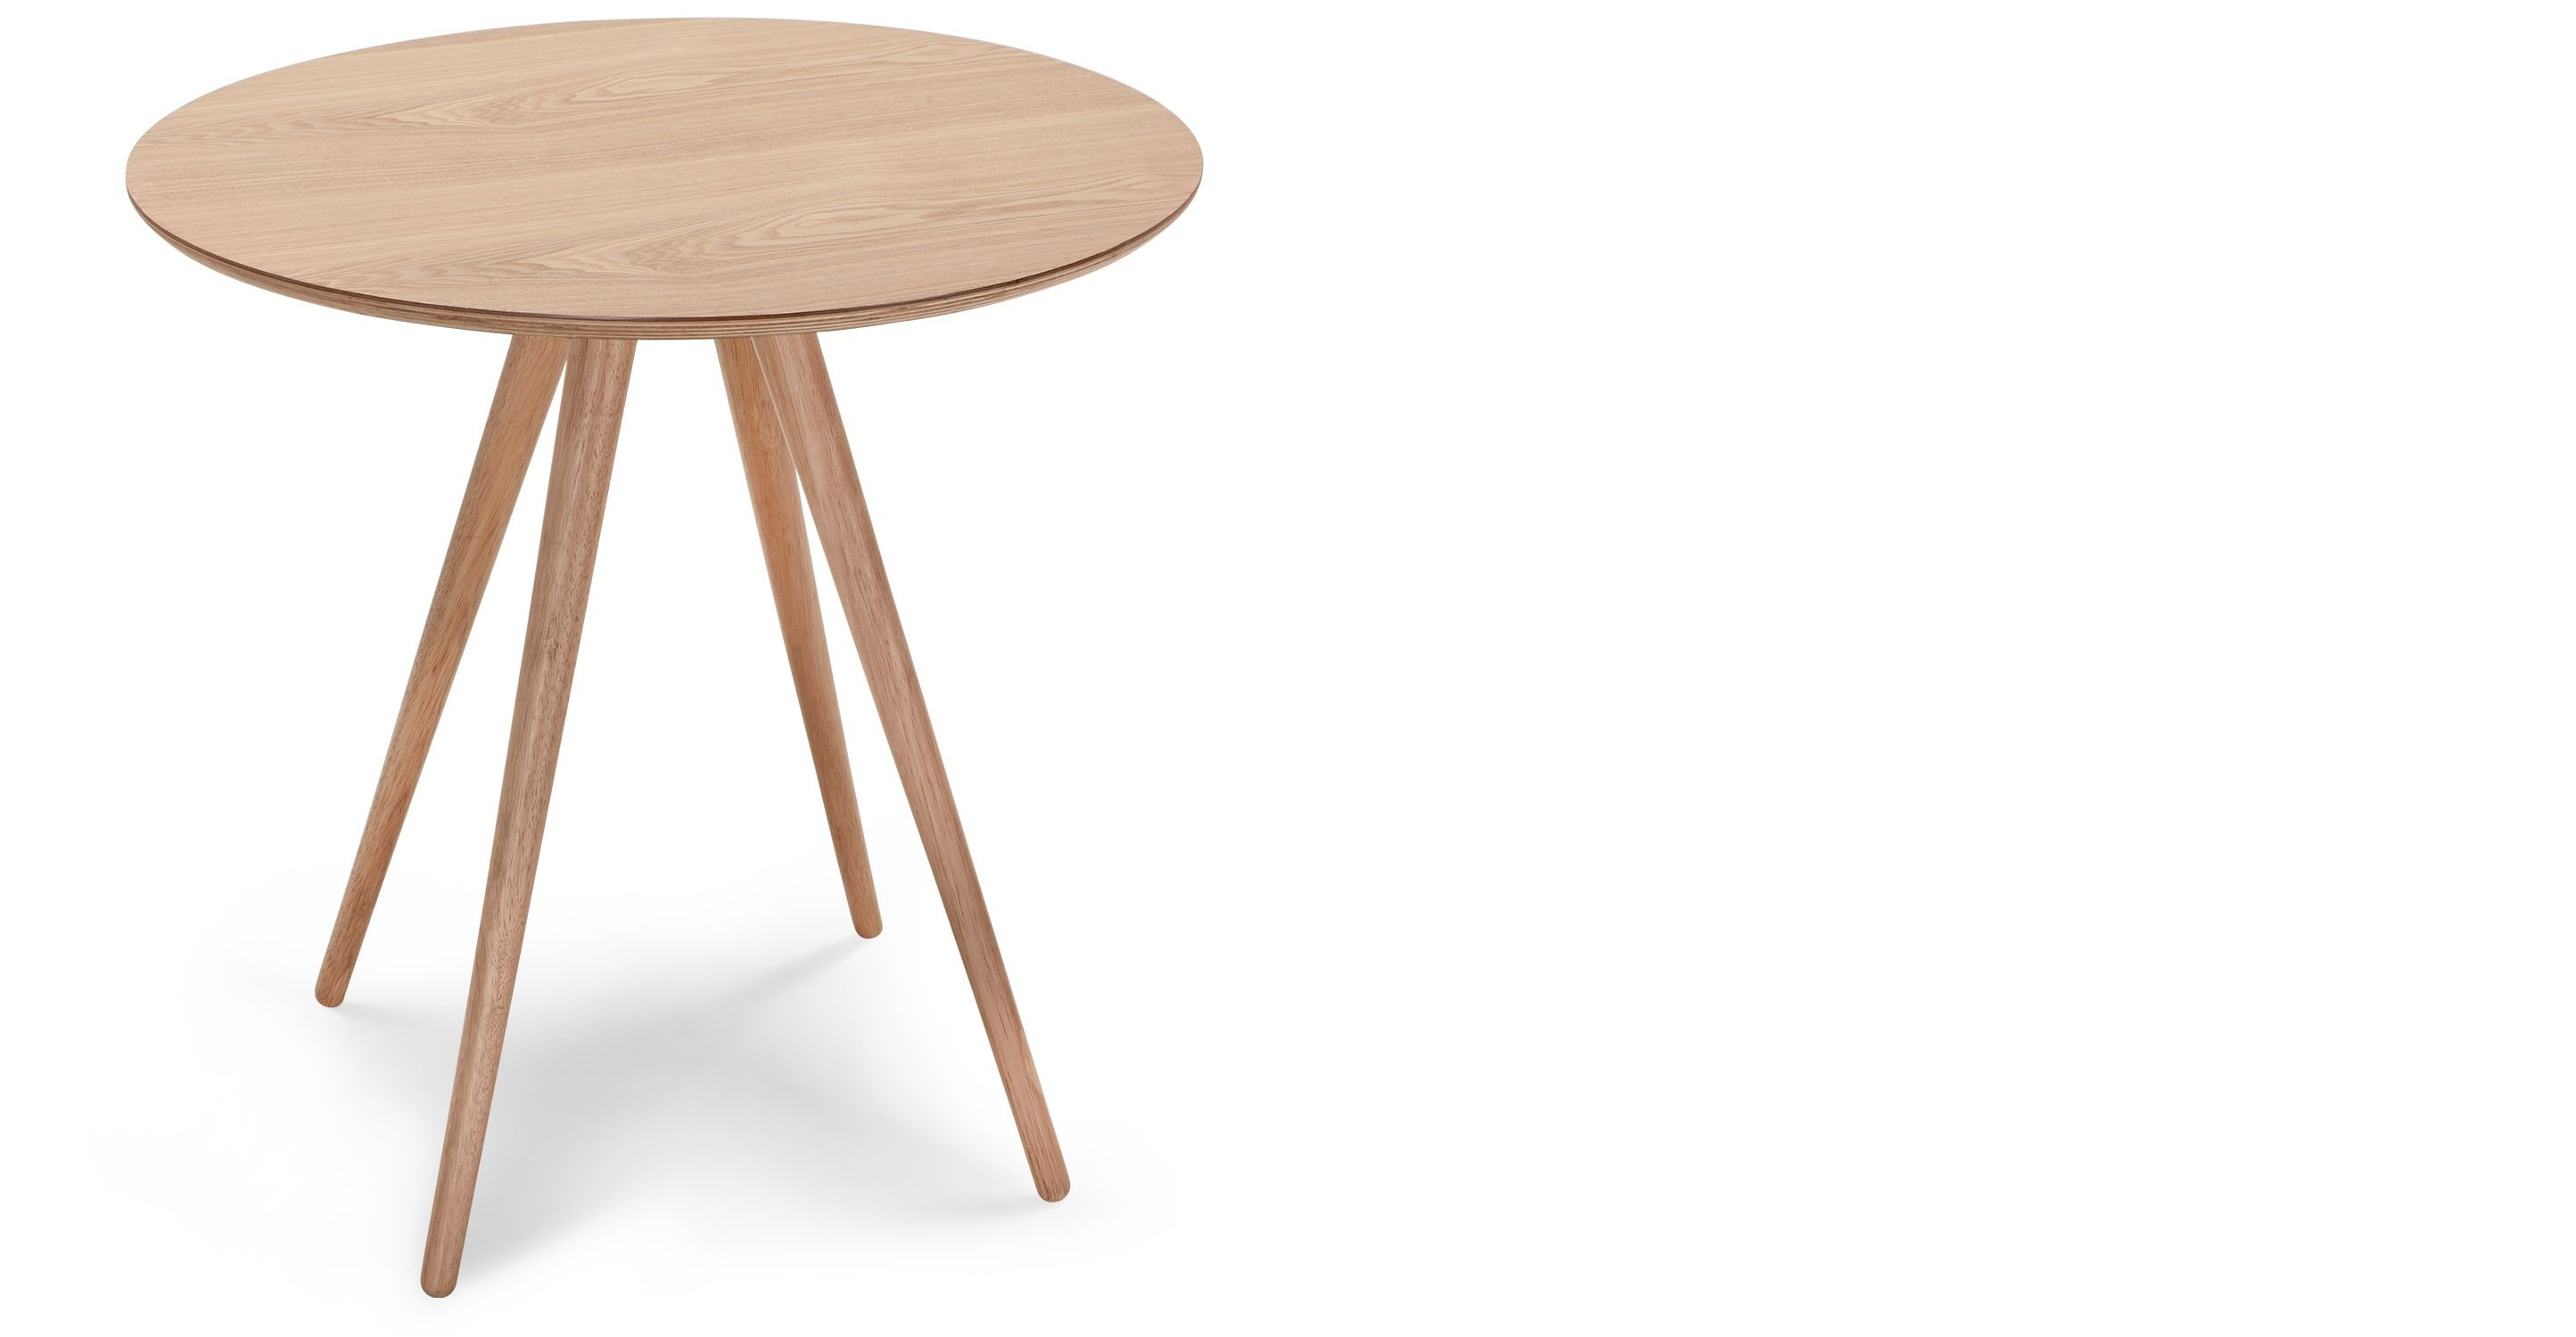 Kitson 2 Seat Round Dining Table Natural Ash Round Dining Table